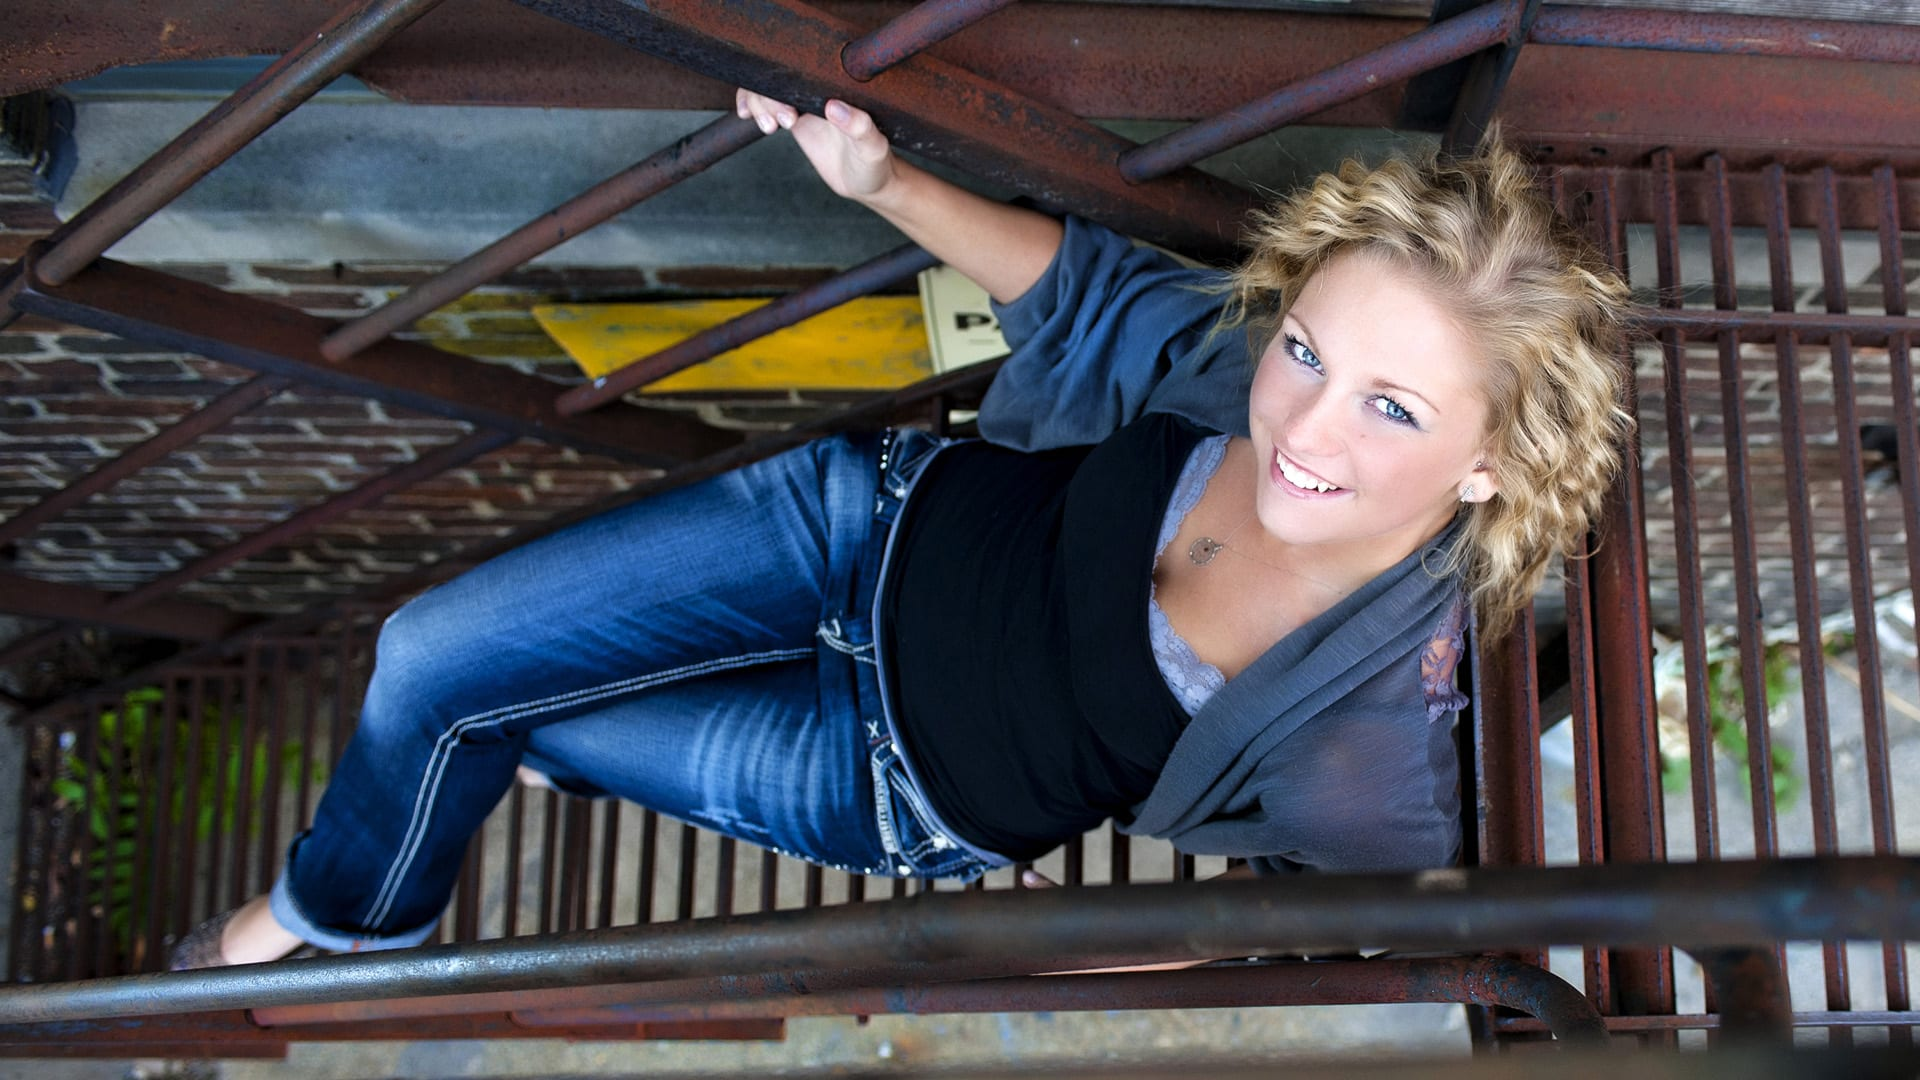 senior girl posing on a rusty fire escape in the city